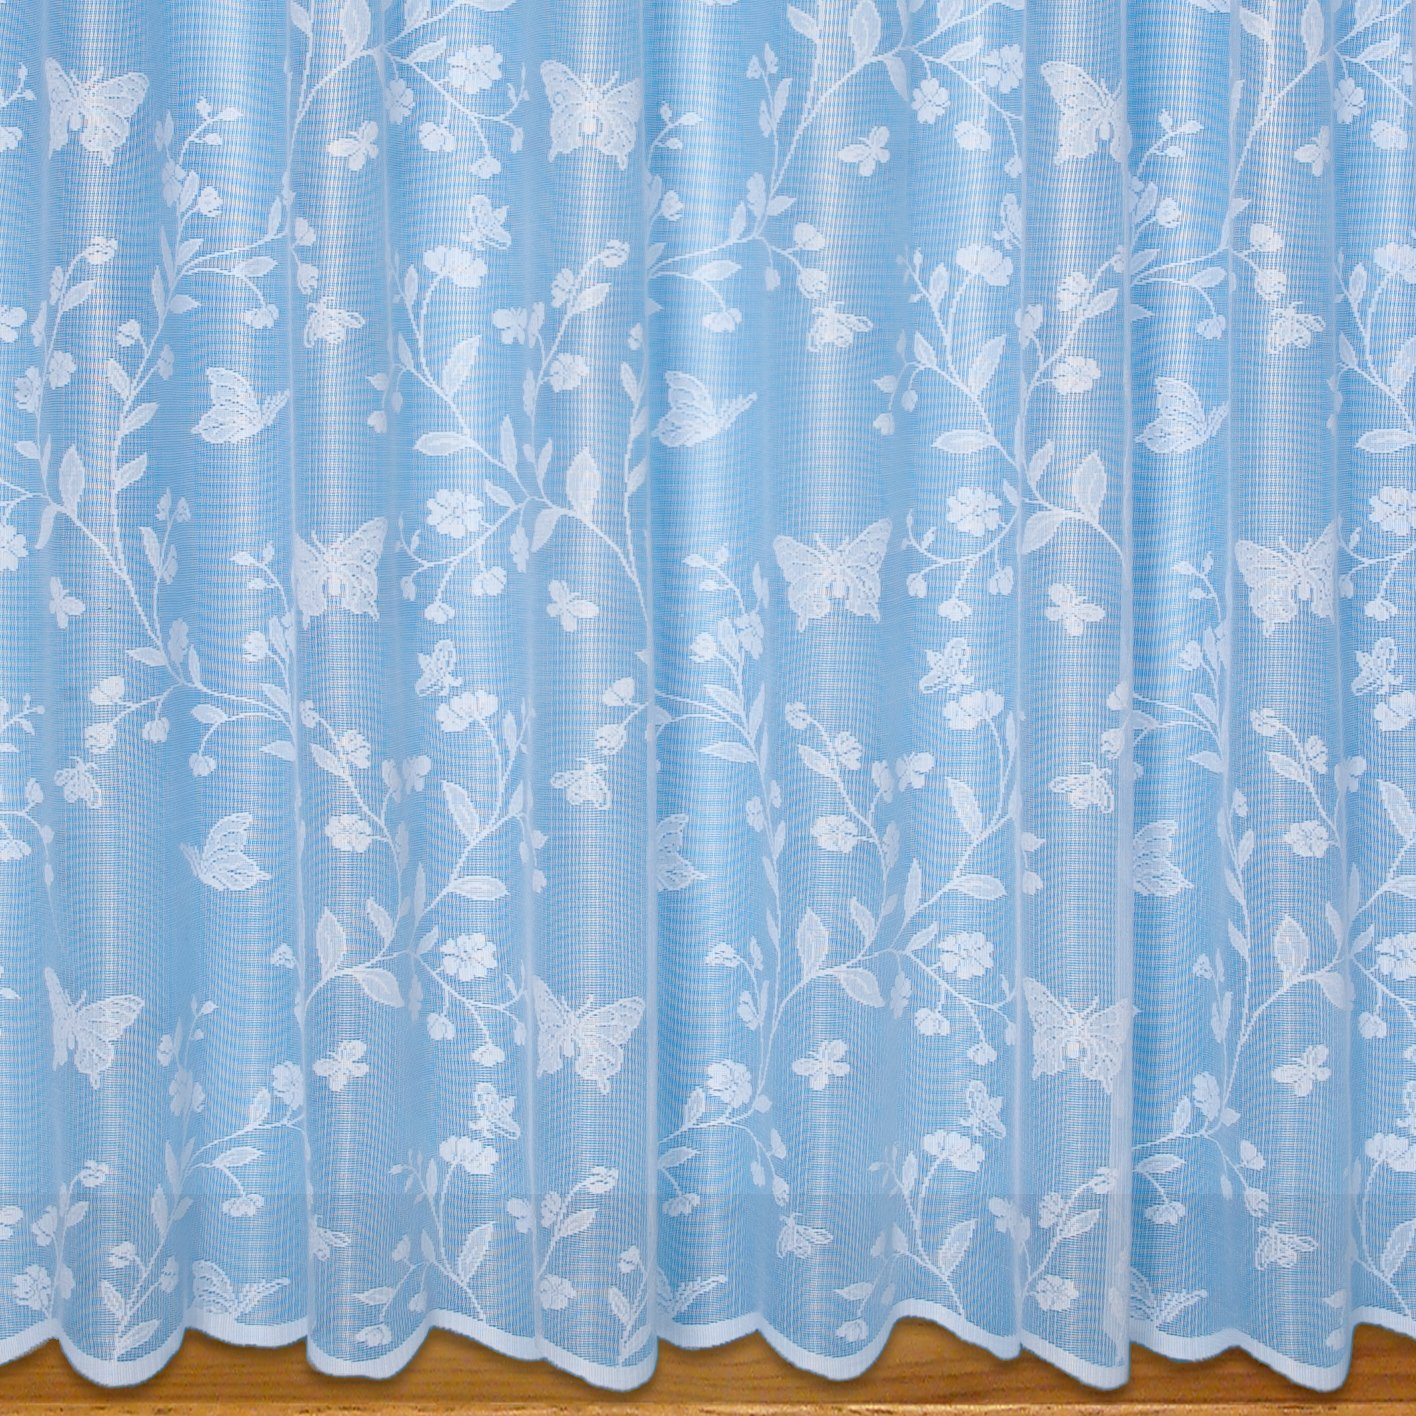 Butterfly Net Curtain White - Sold By The Metre (36